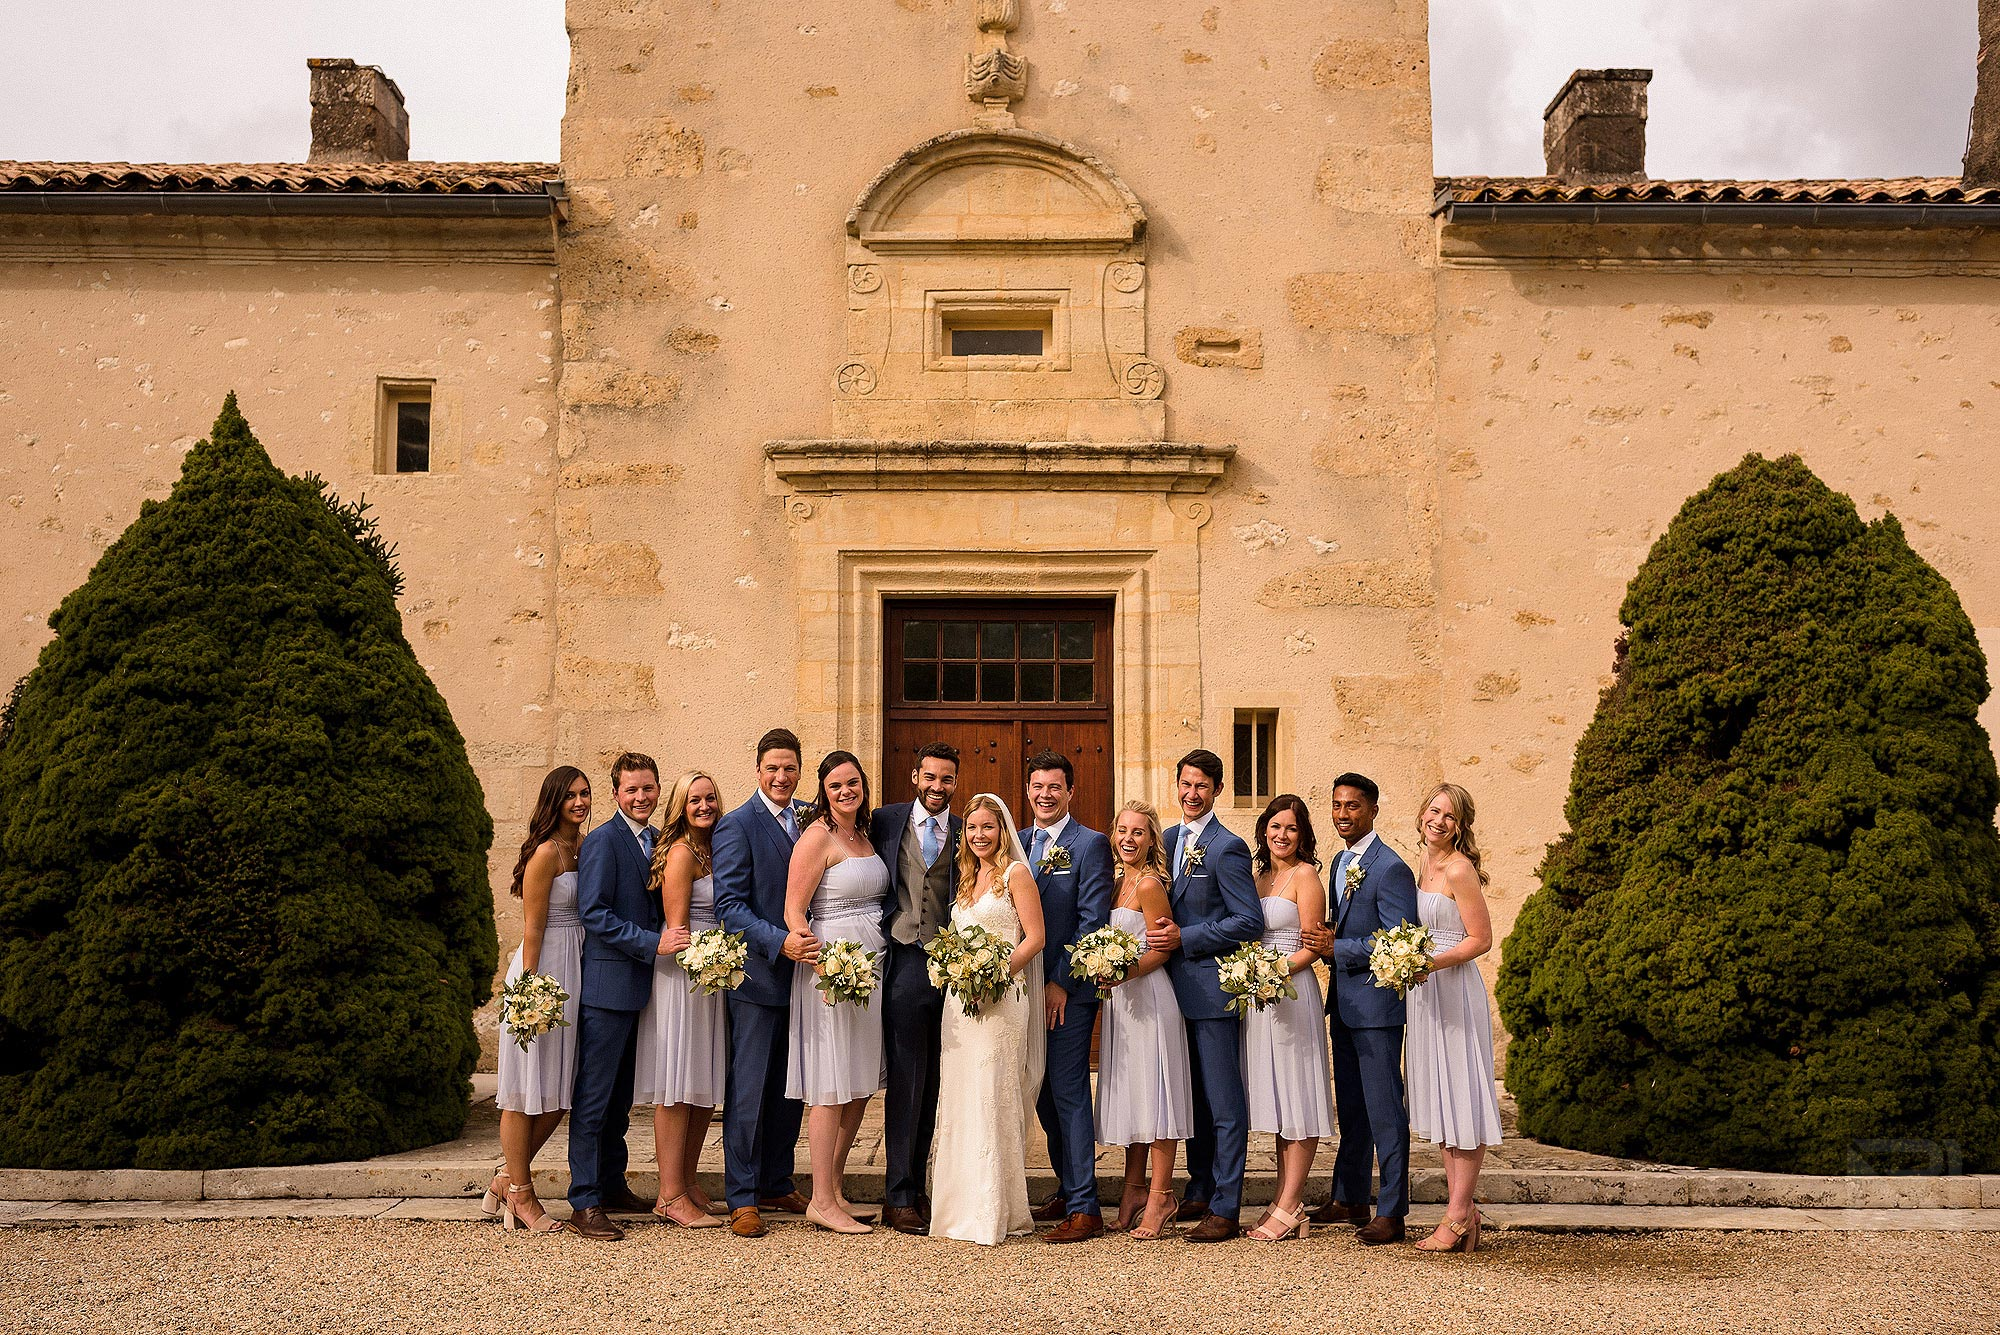 portrait of bridal party together at Chateau Soulac